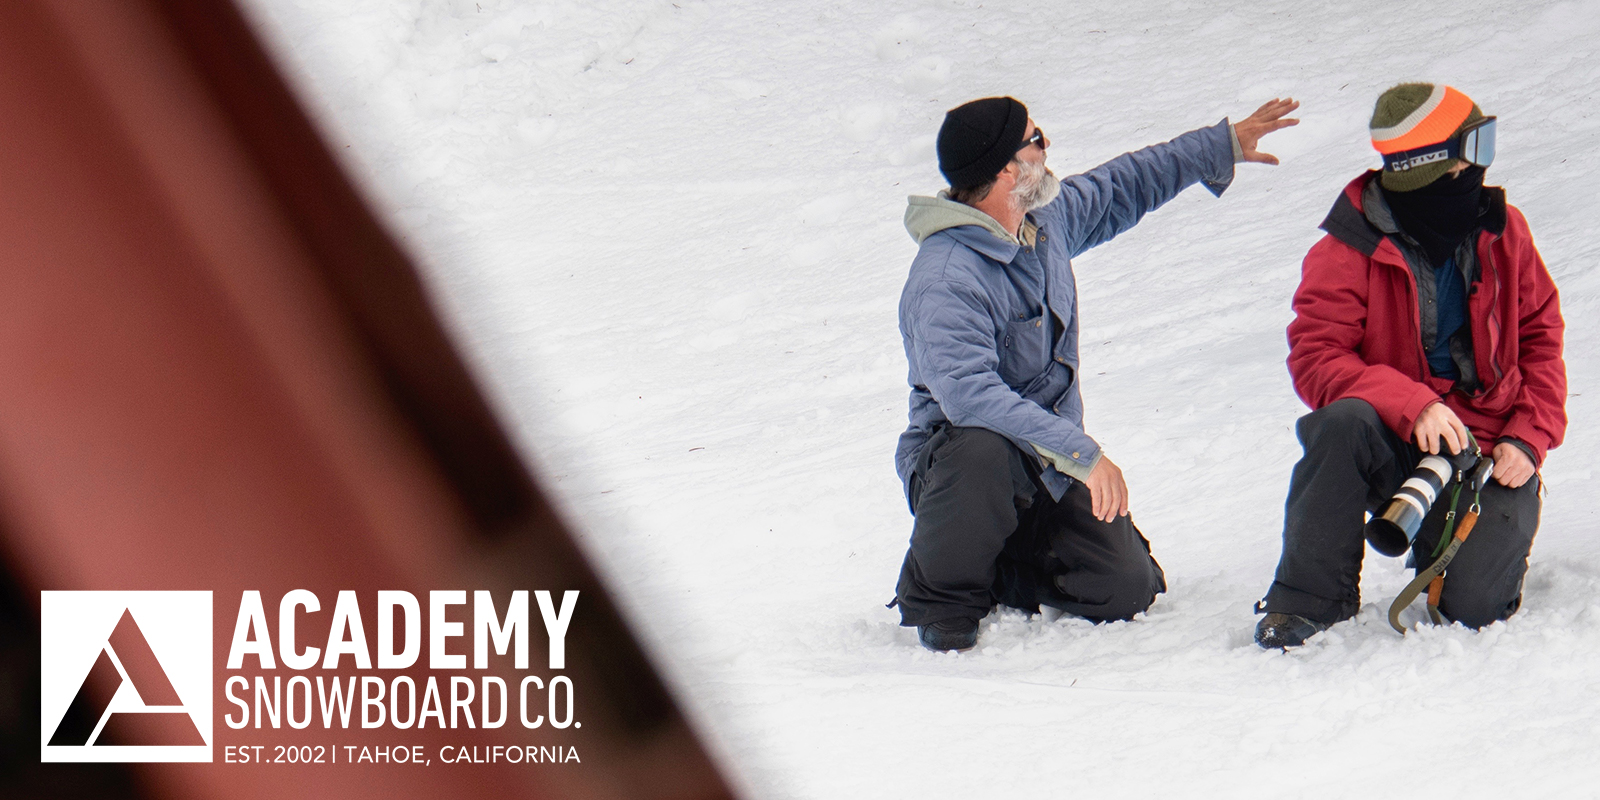 Academy Snowboards – Good People, Great Snowboards